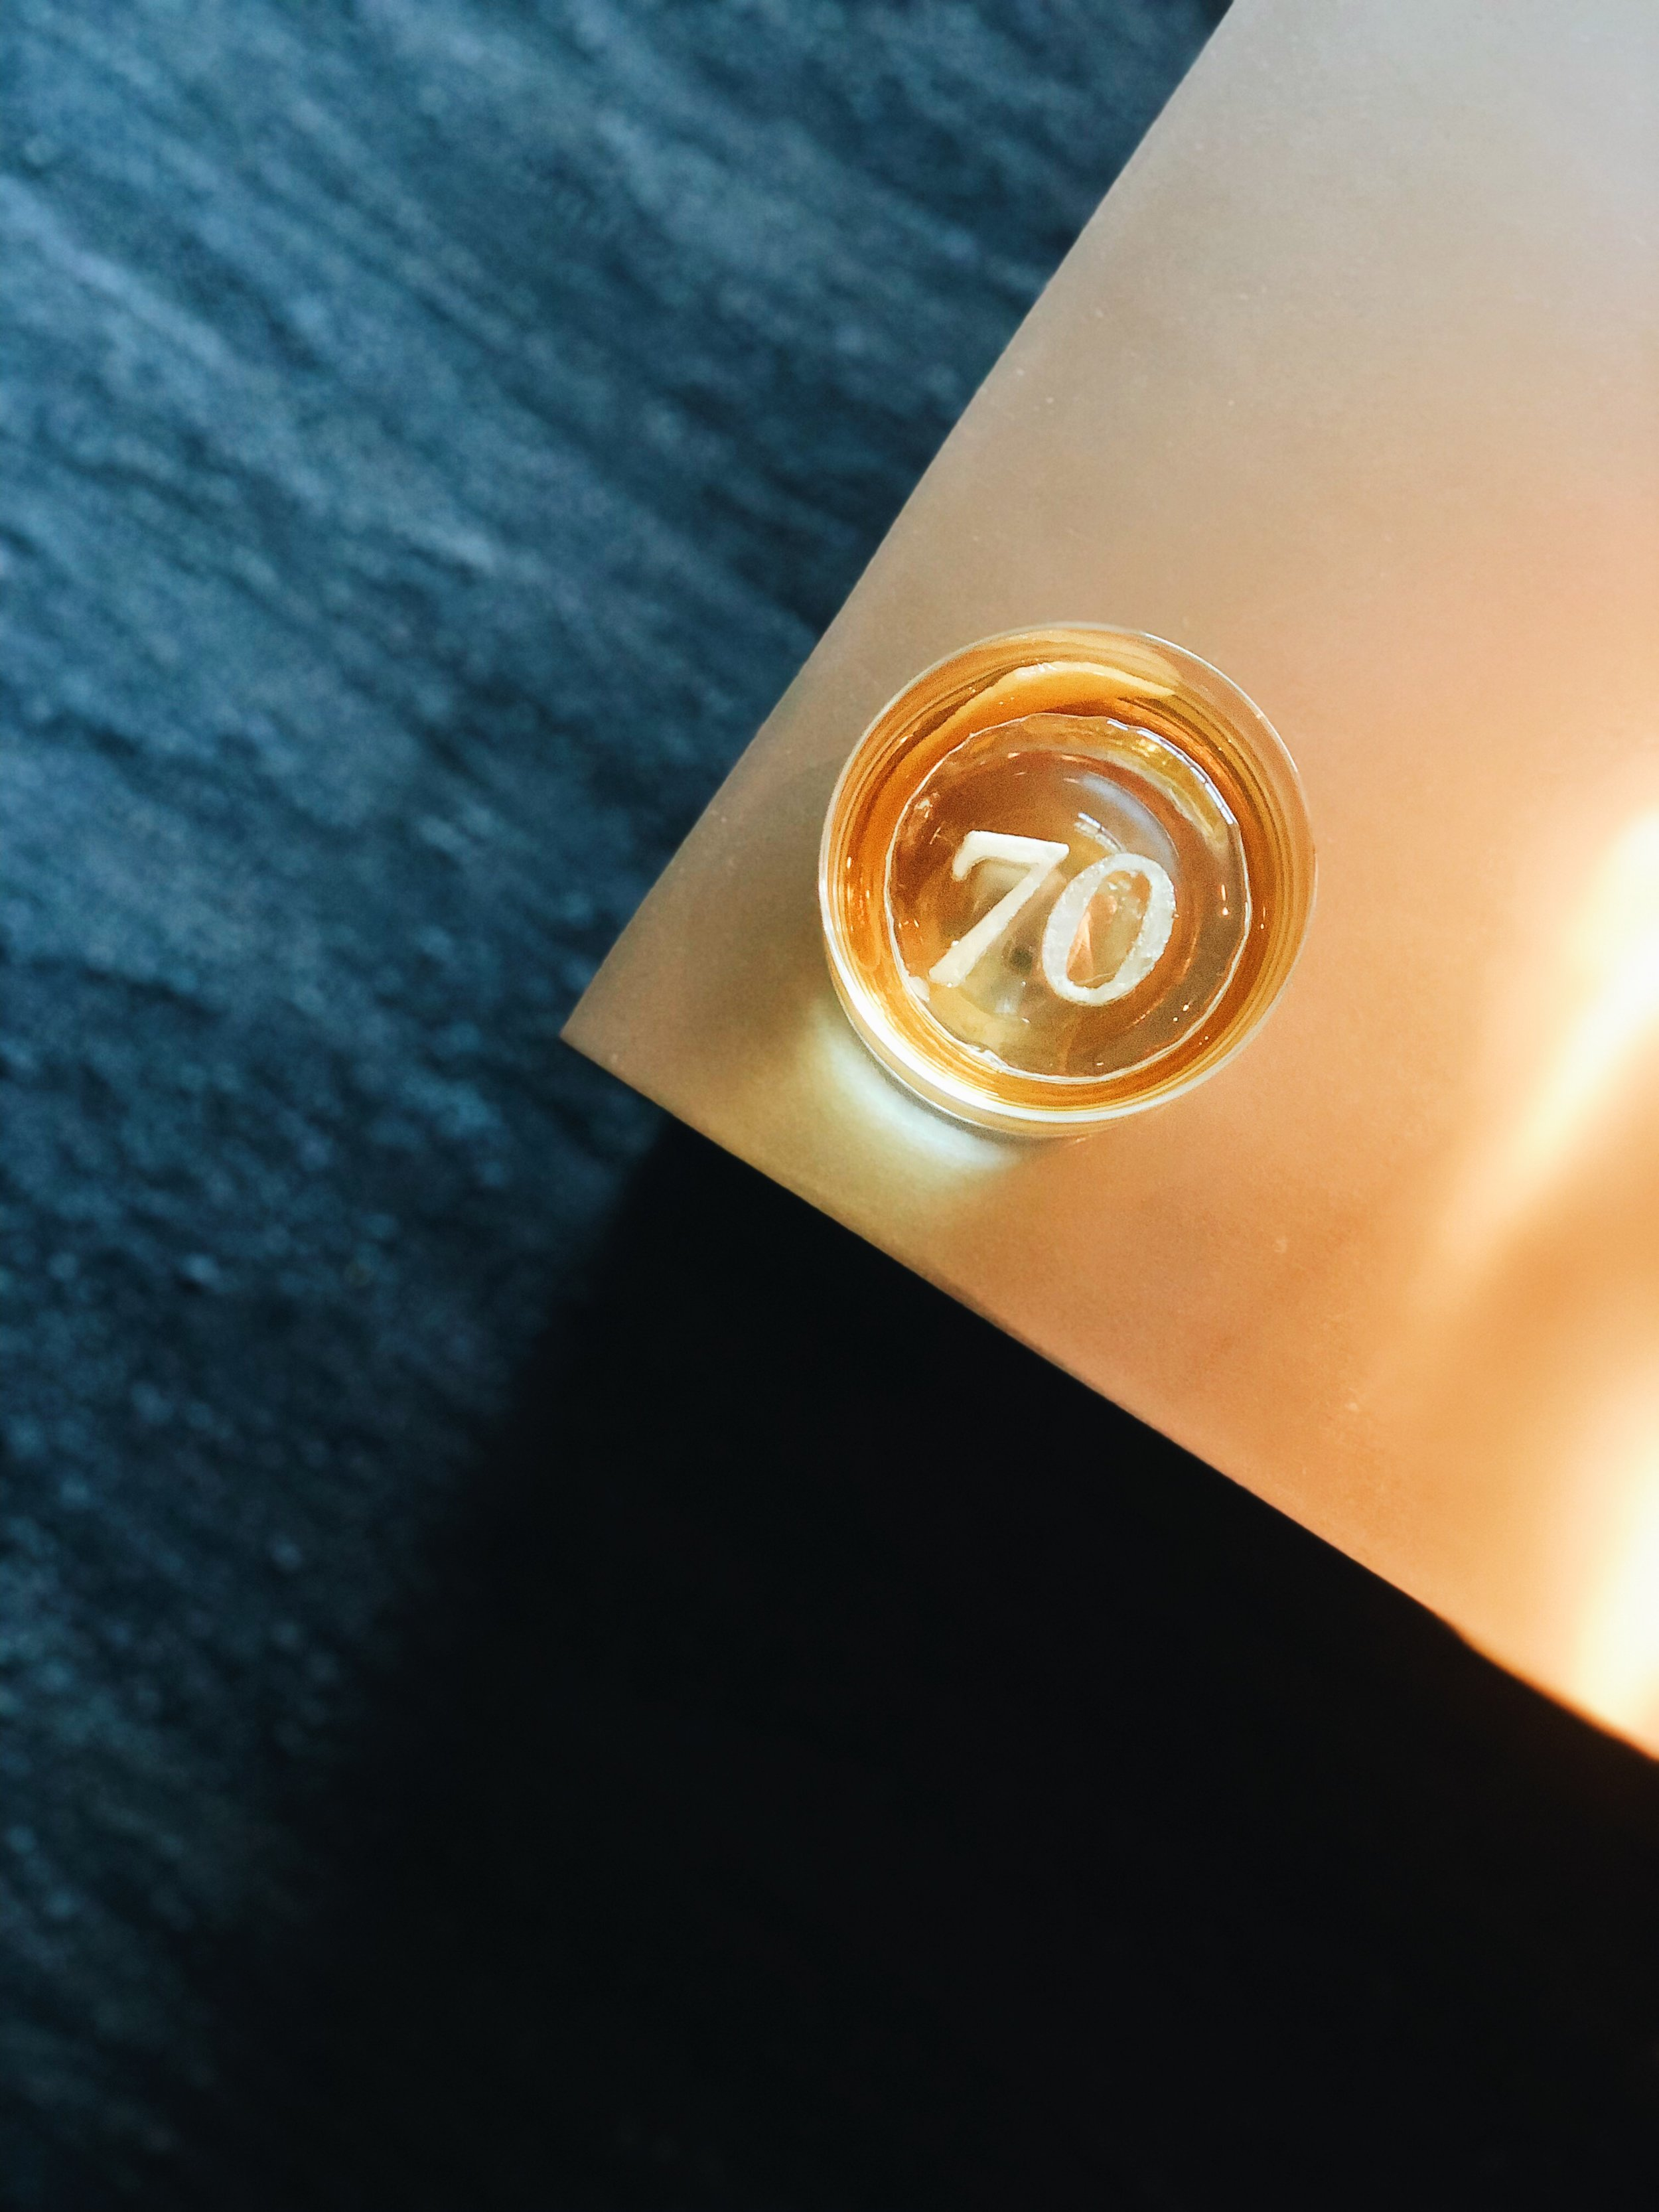 We love Erik Eastman's shot of the custom ice cubes he made with our 70th logo.